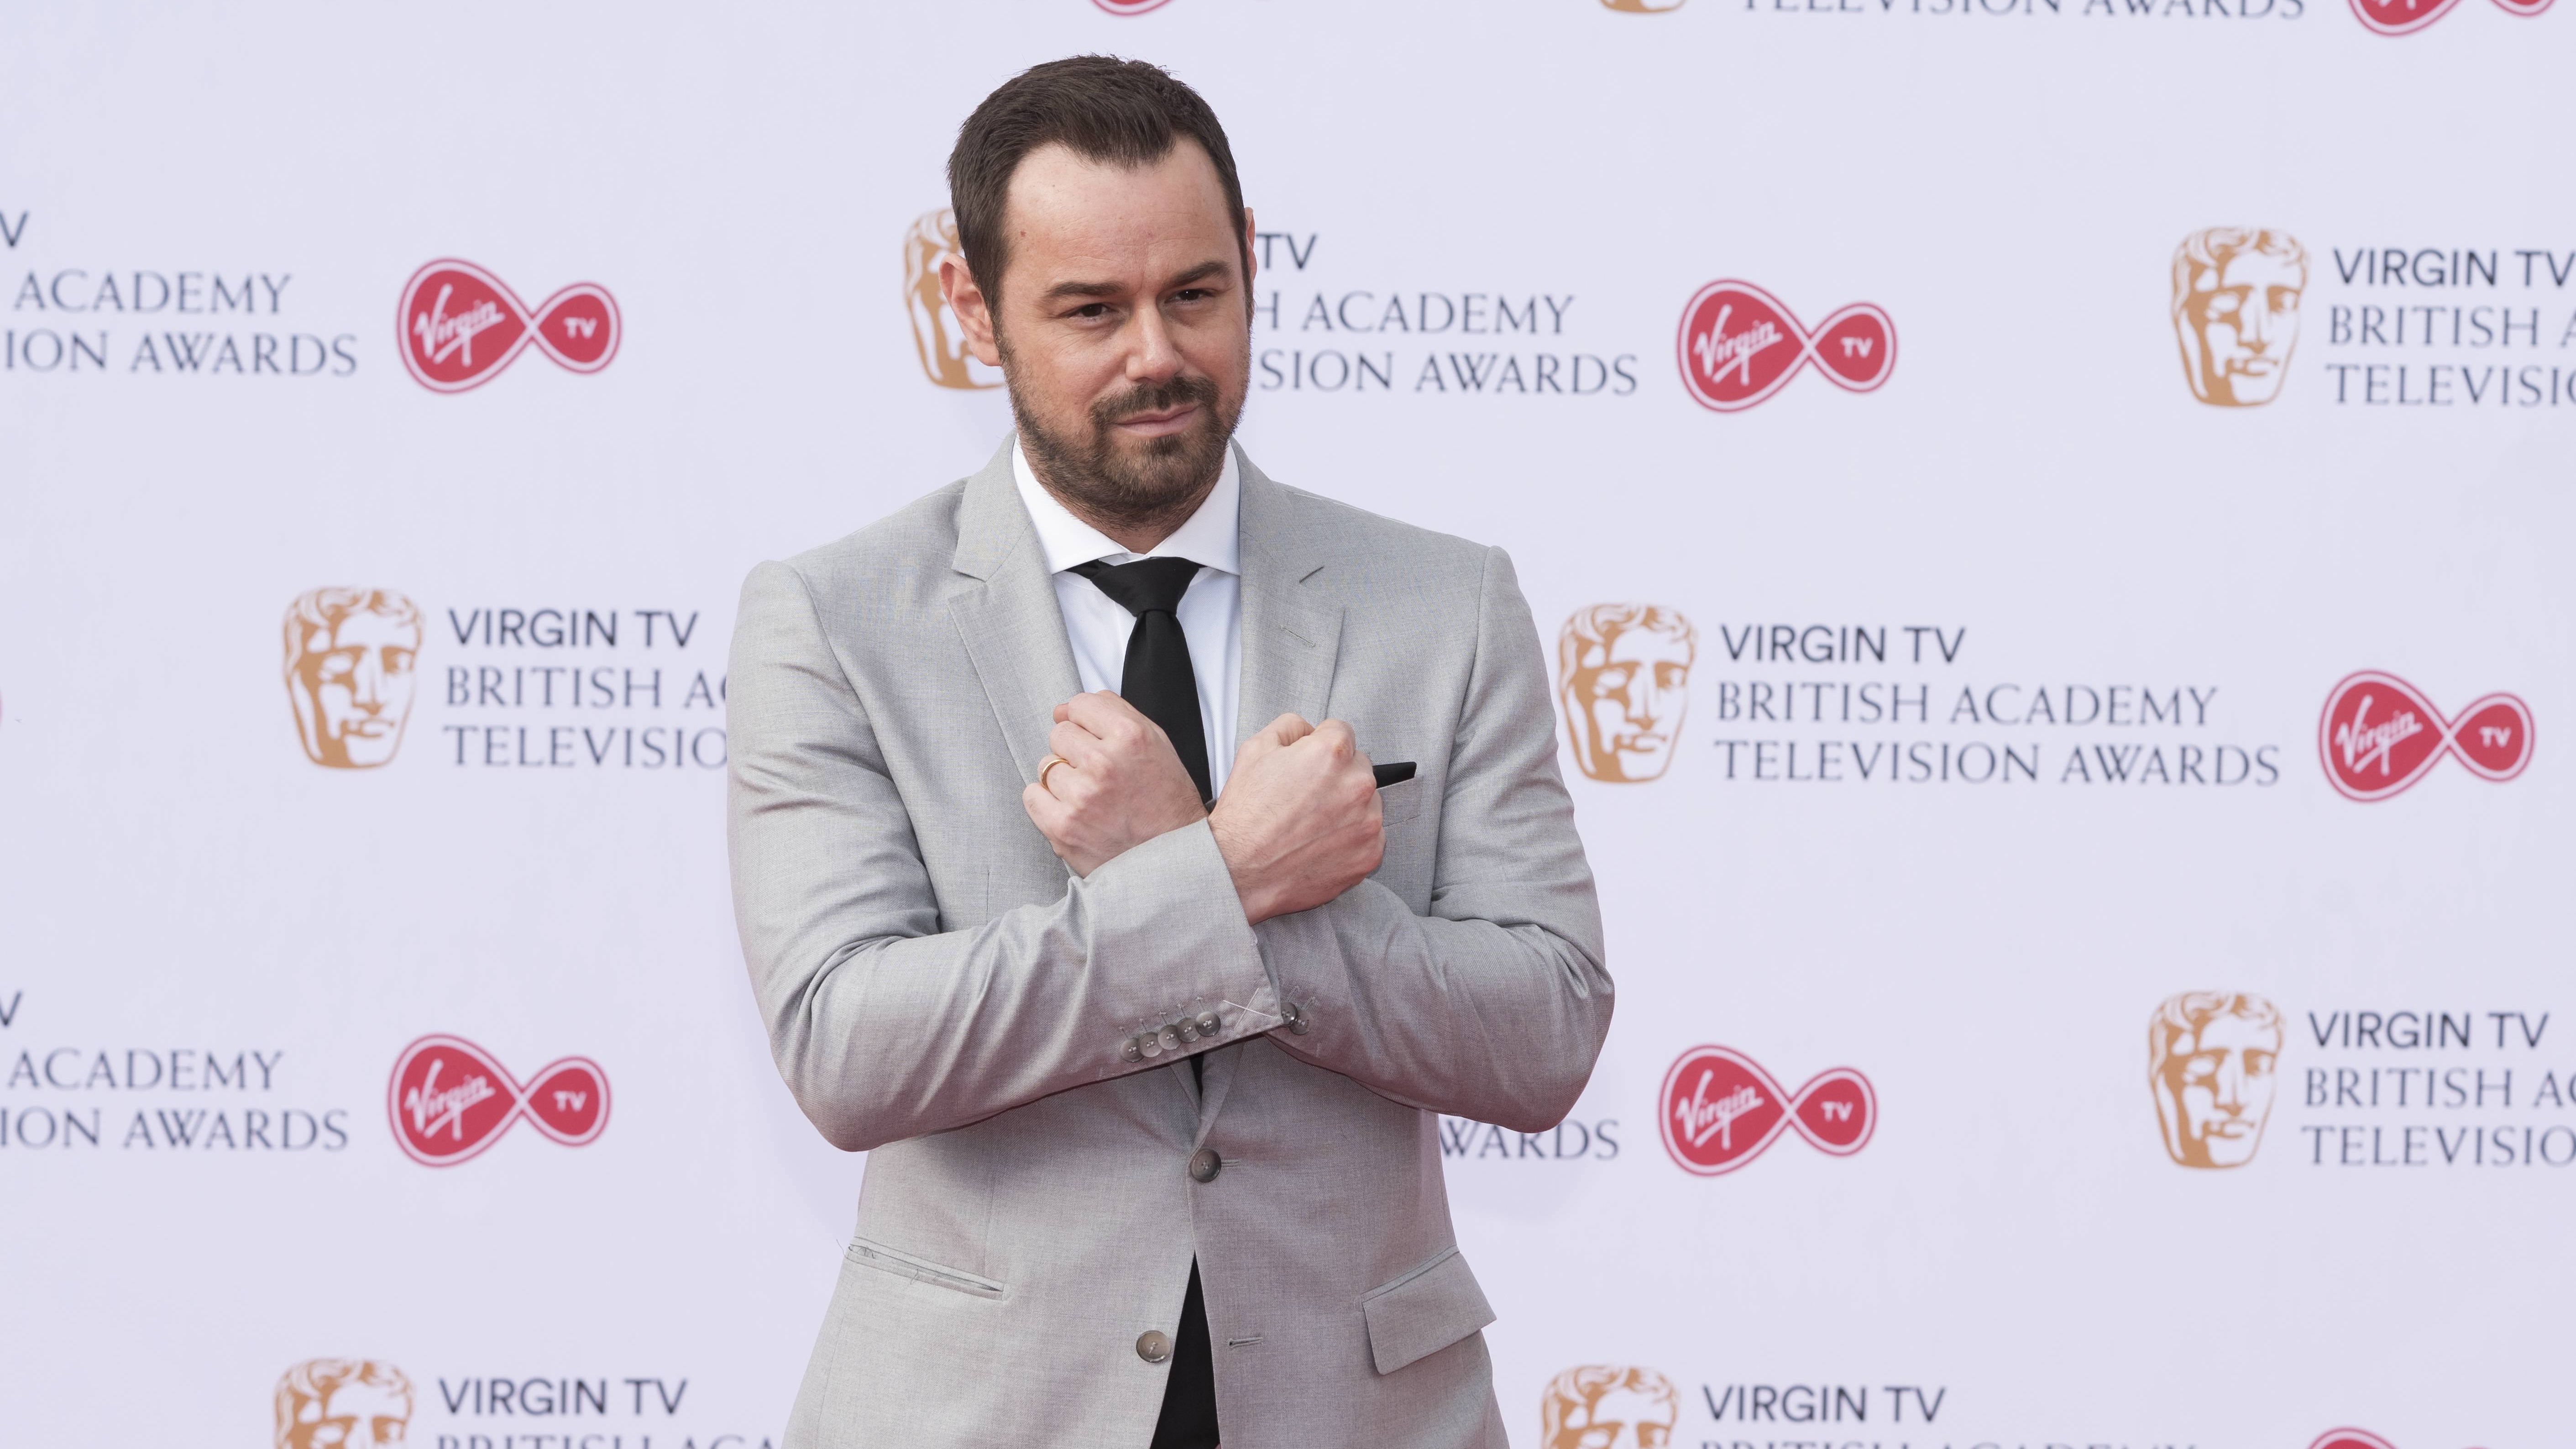 Odds Slashed On Danny Dyer Appearing On 'I'm A Celebrity'